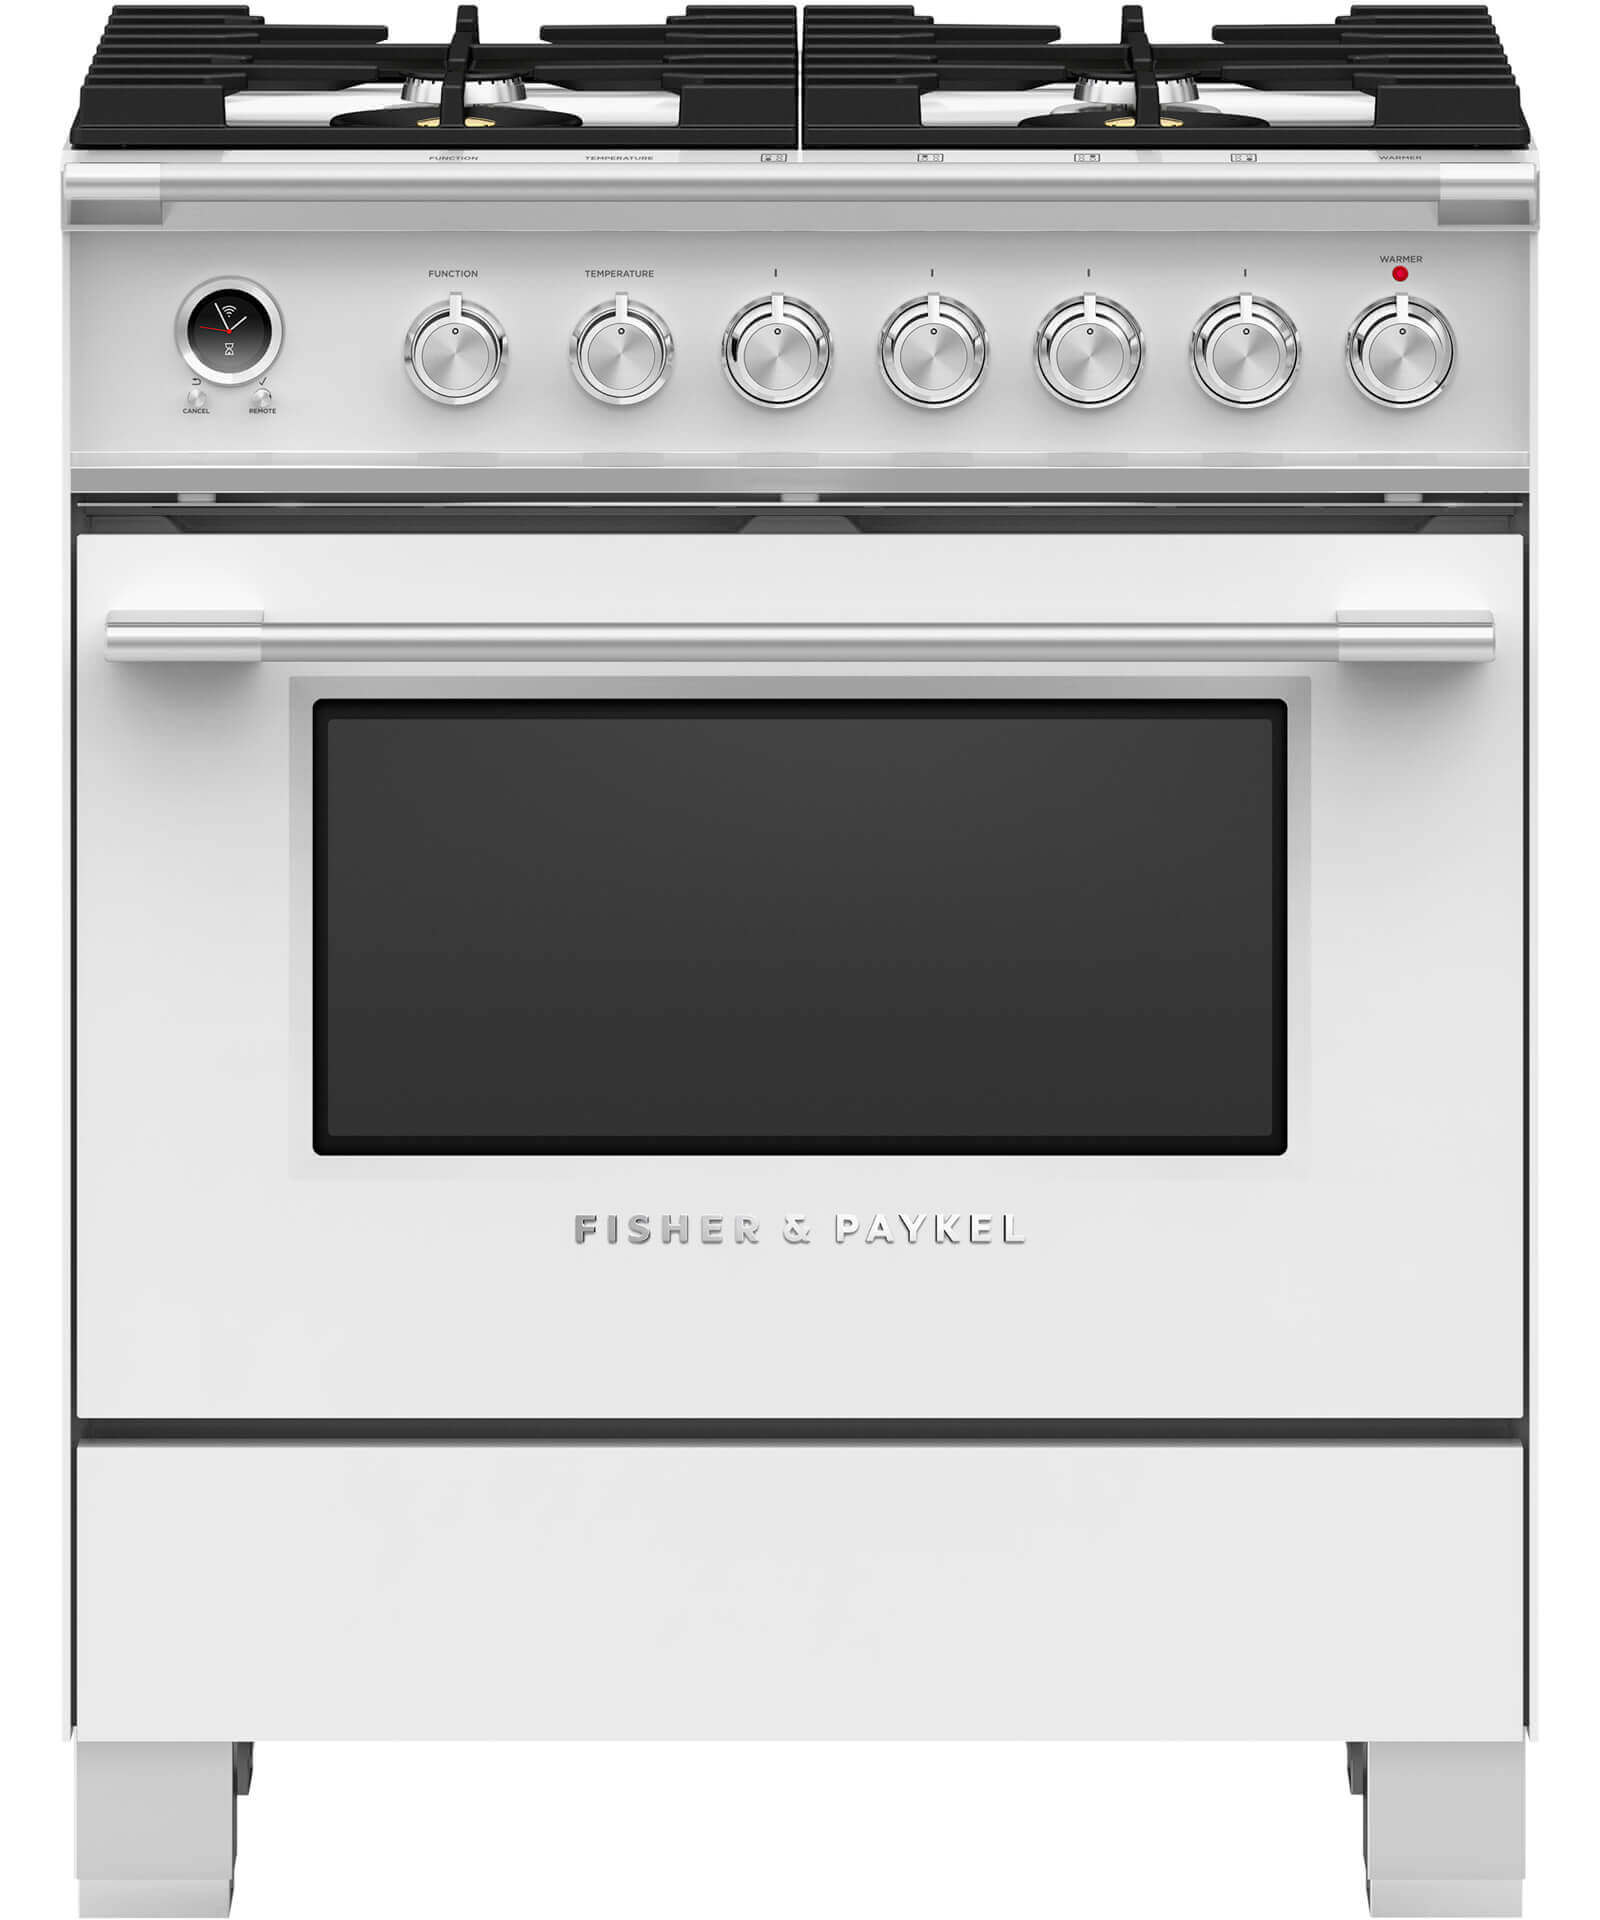 Or30scg6w1 Freestanding Dual Fuel Range 30 Fisher Paykel Us